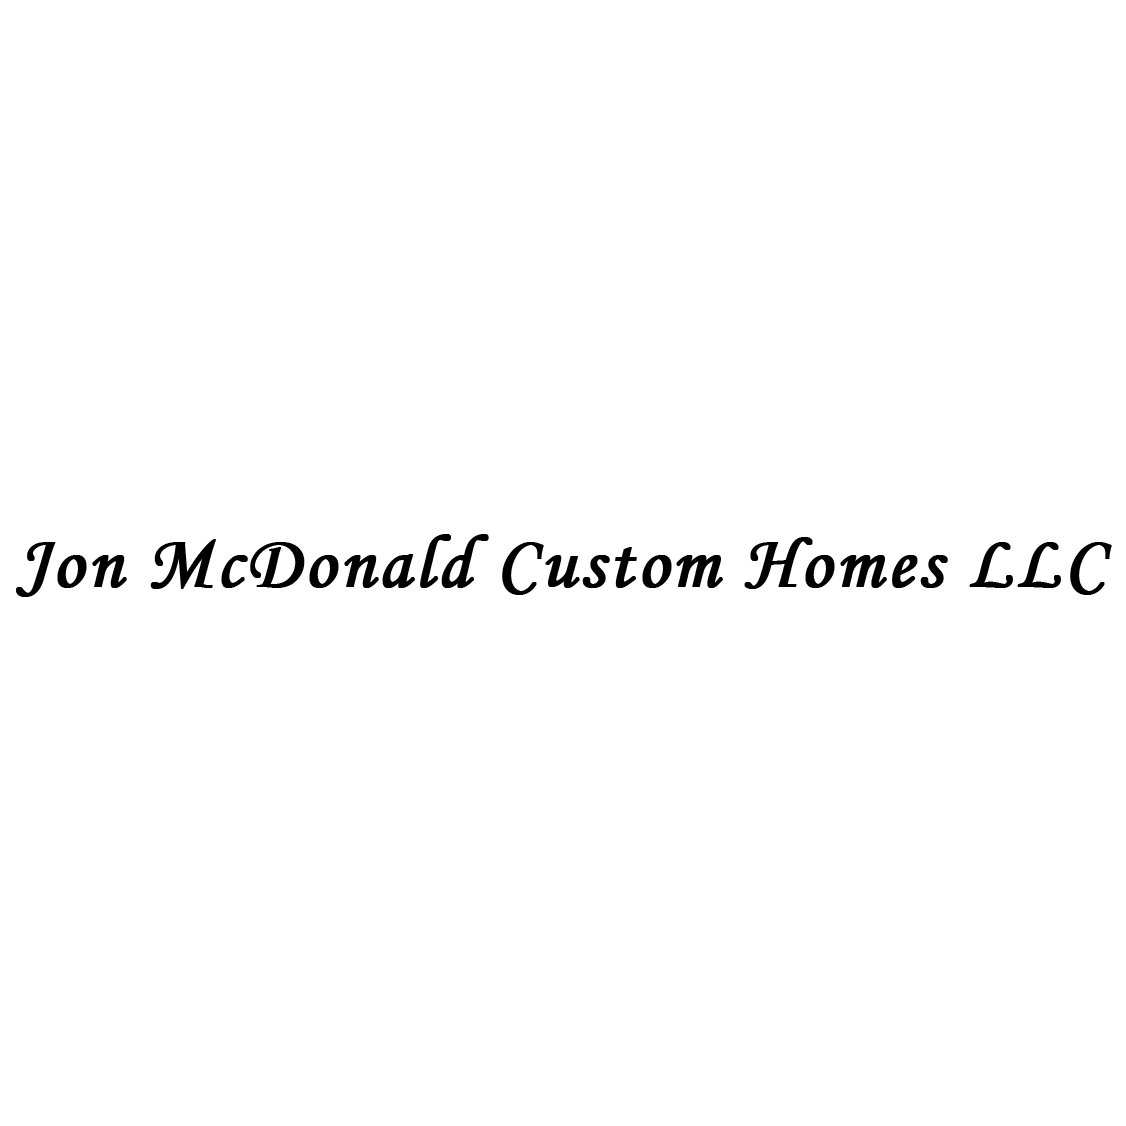 Jon McDonald Custom Homes LLC